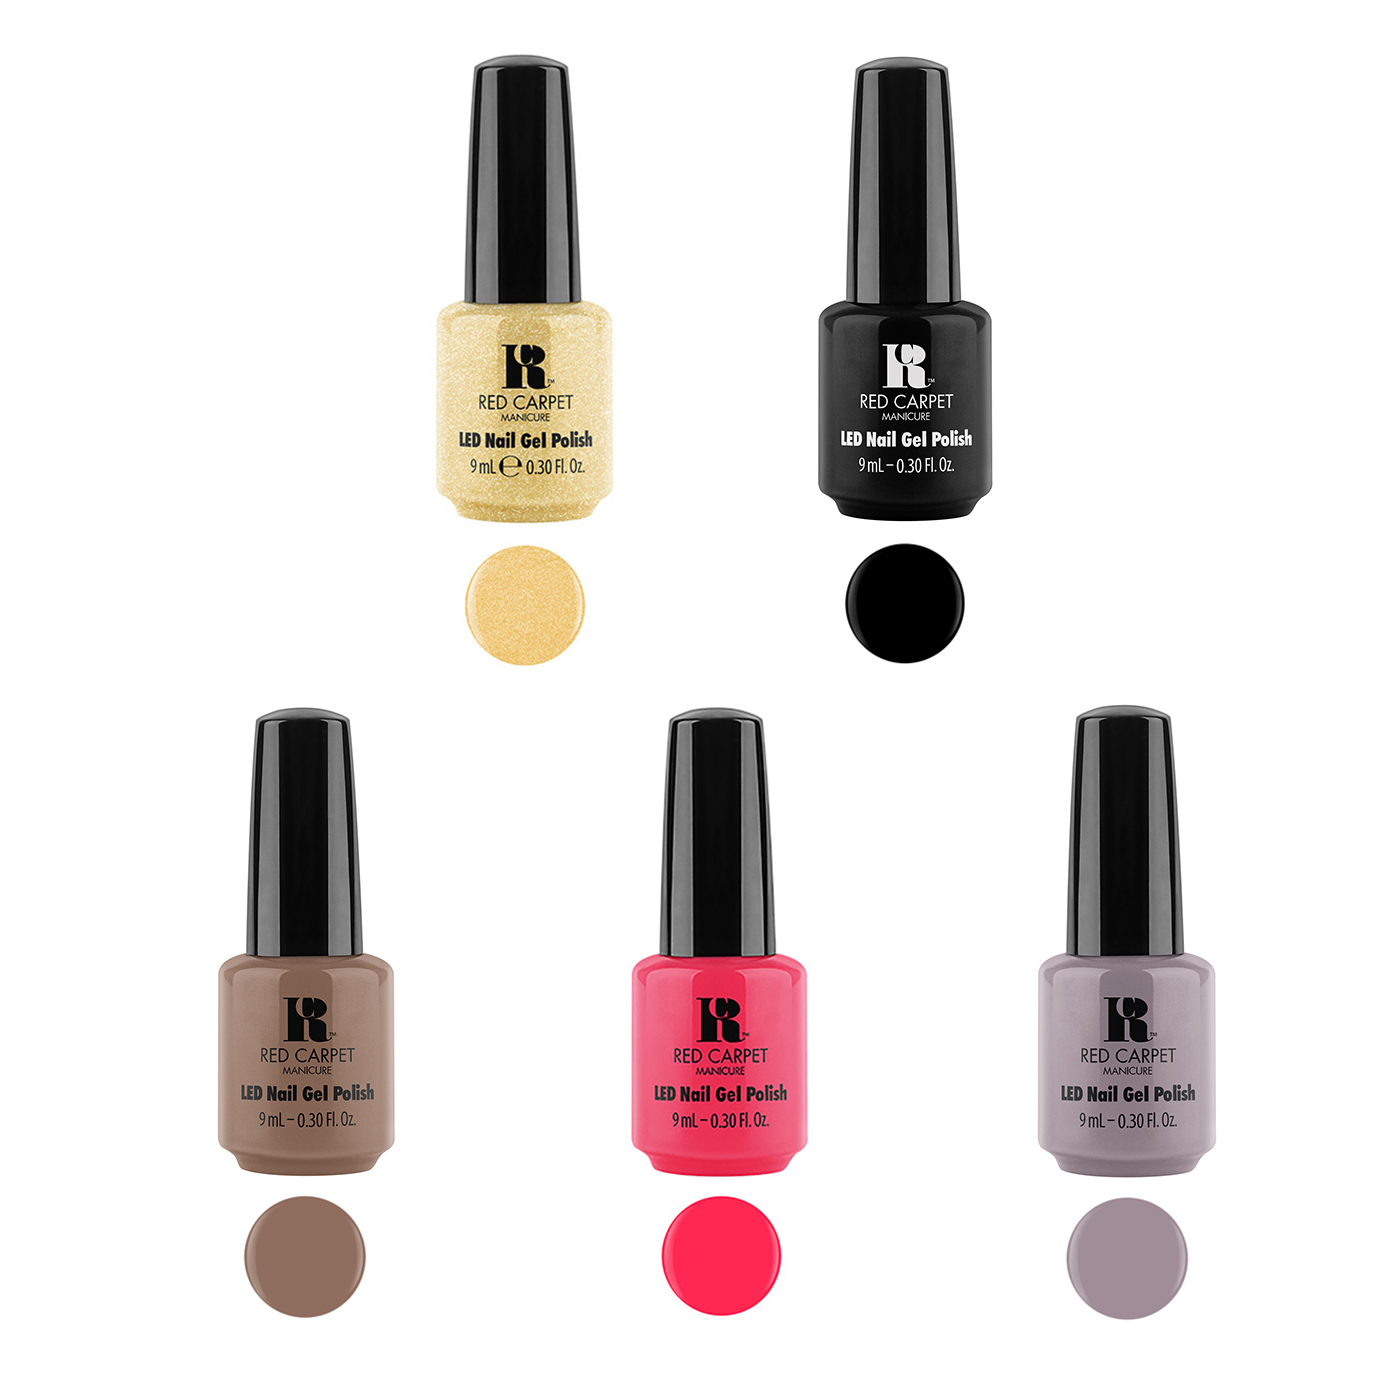 Red Carpet Manicure Gel Nail Polish 9mL Bottles Rock the Night Kit (5 Pack)